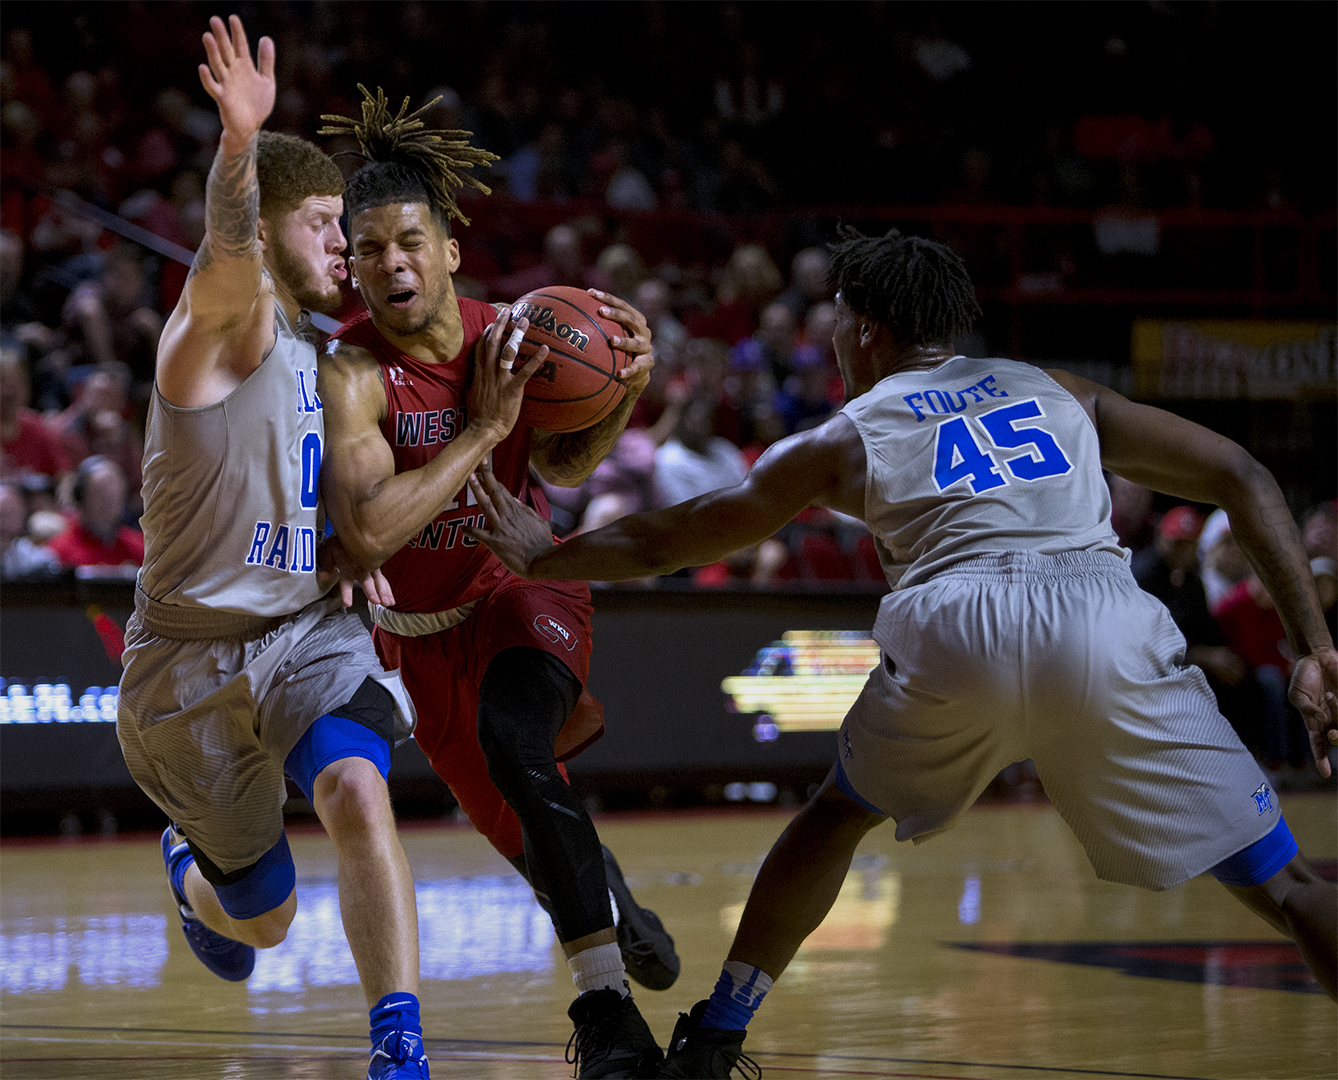 Redshirt Senior guard Pancake Thomas (12) drives to the hoop as he is defended by Middle Tennessee guard Tyrik Dickson (0) and guard Adonis Foote (45) during WKUs 78-52 loss to MTSU on Thursday Feb. 16, 2017 in Diddle Arena.